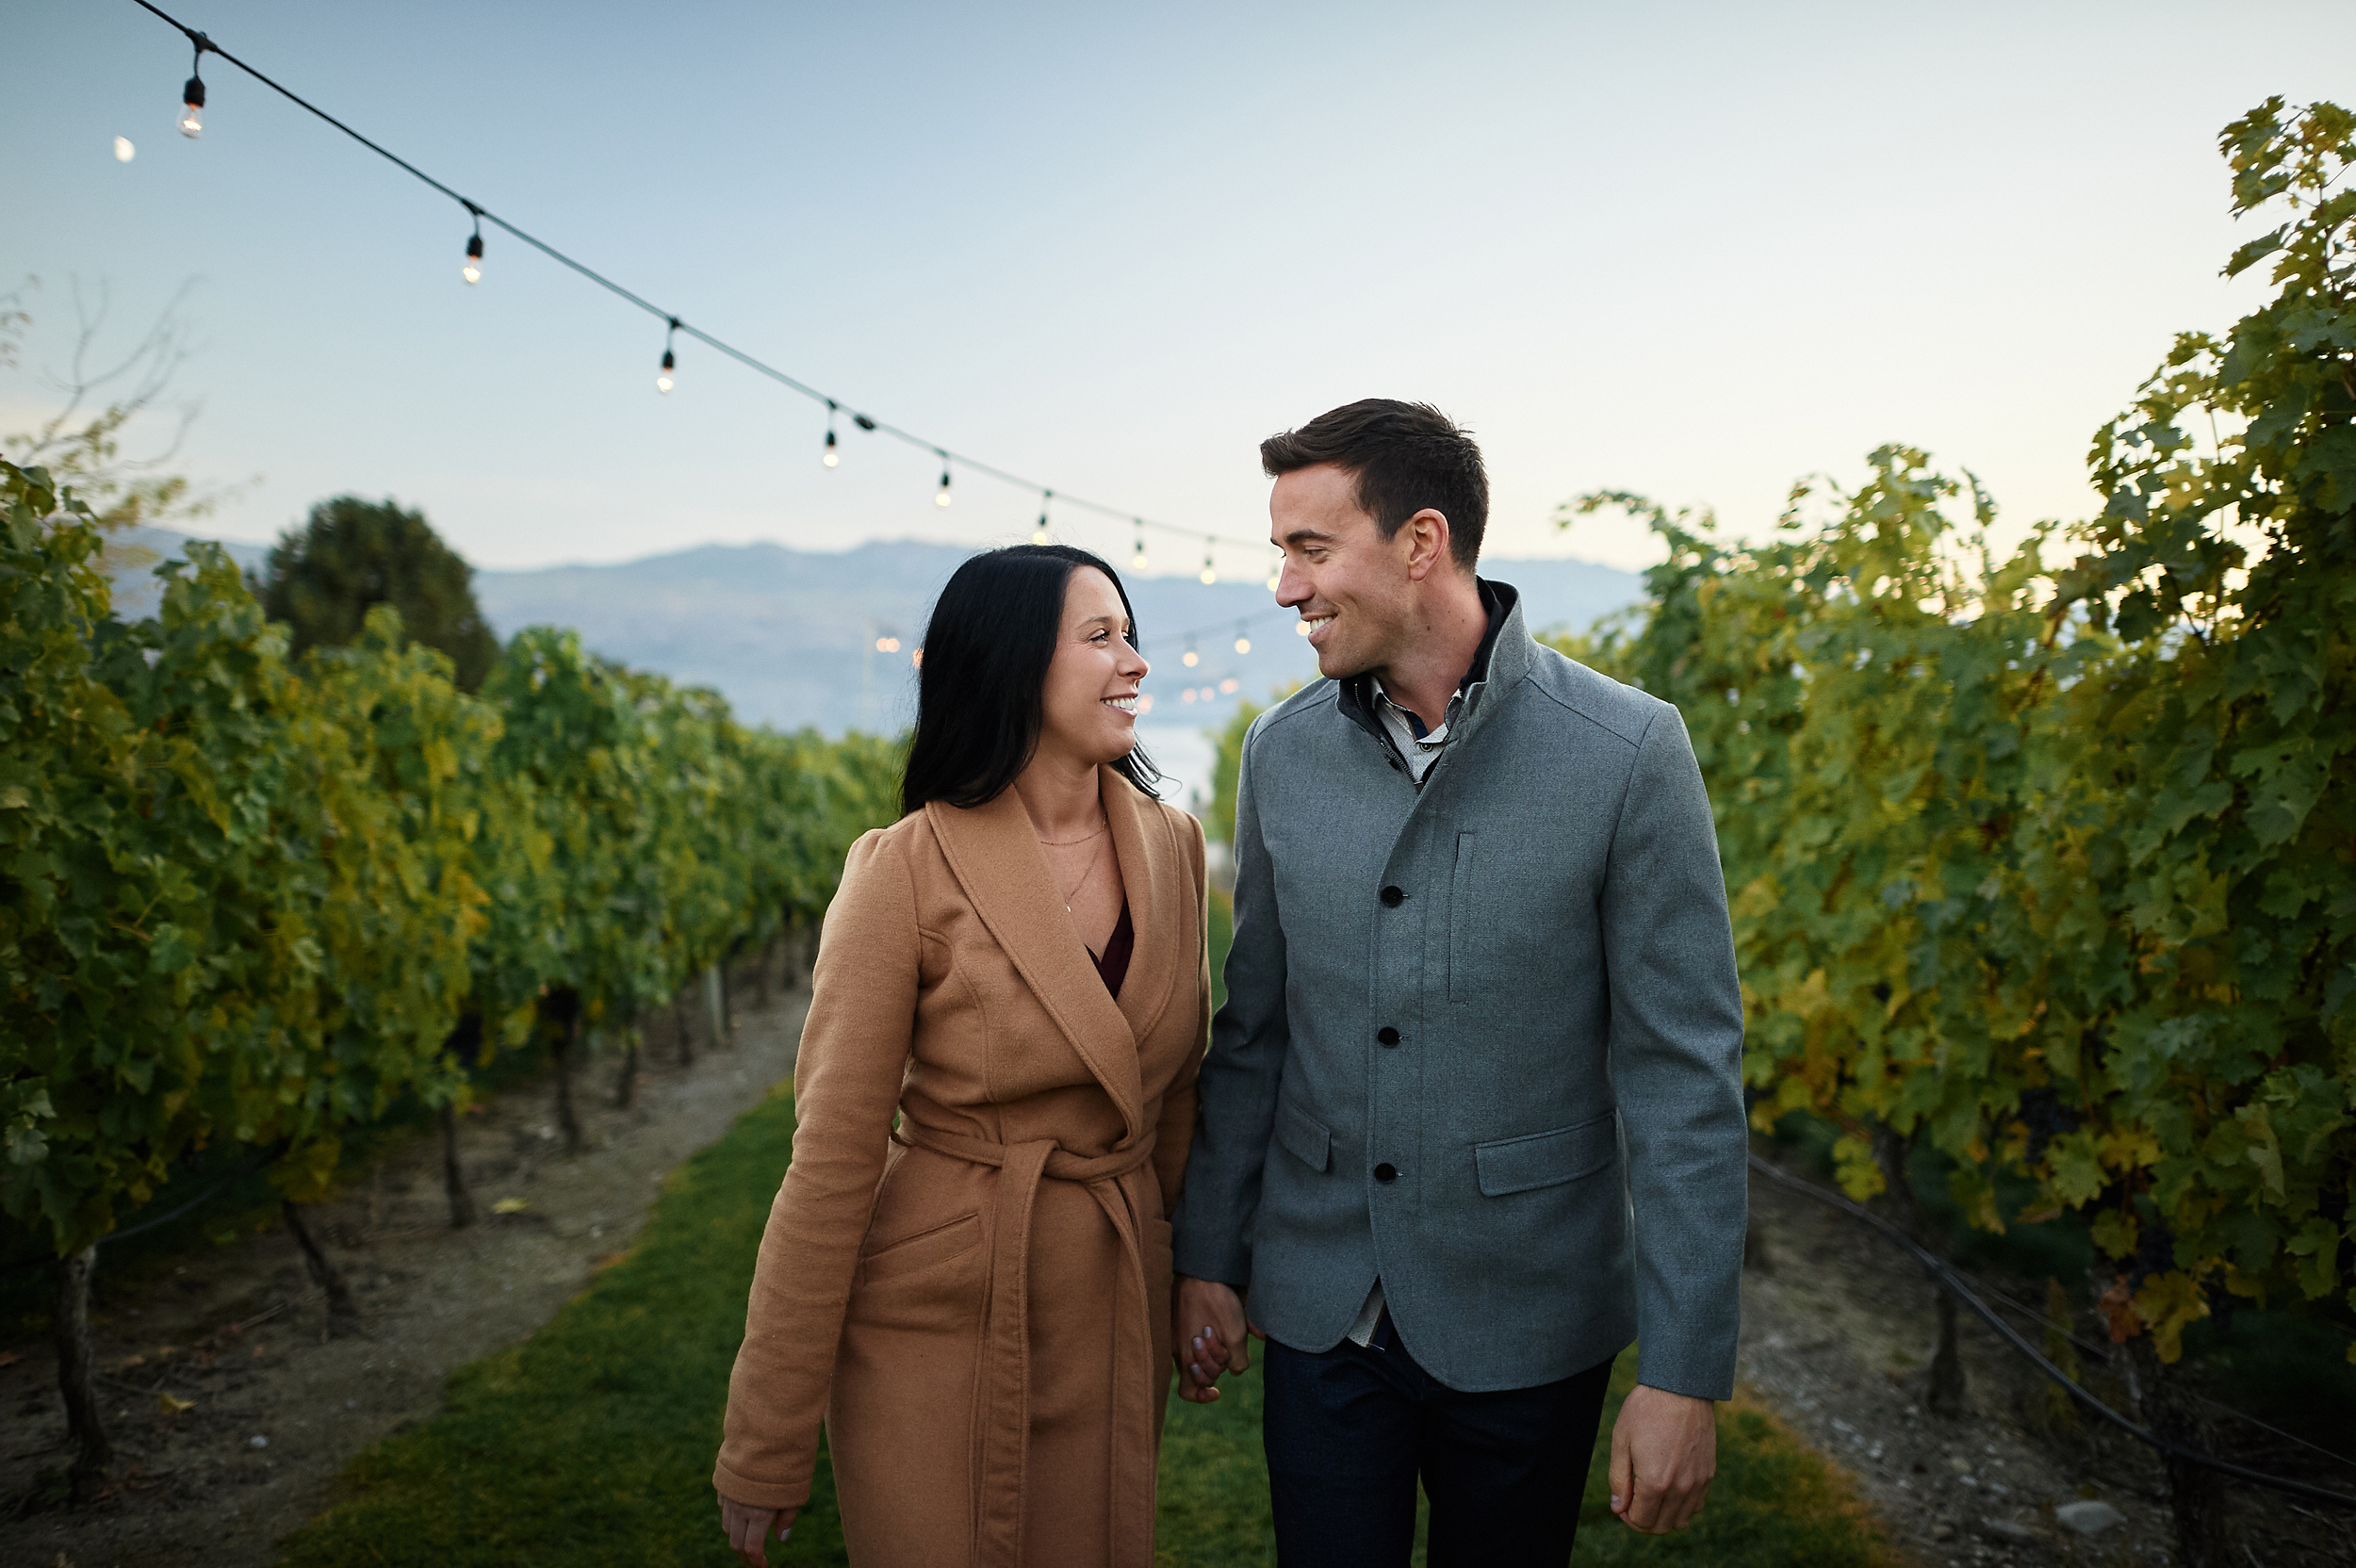 engaged couple walking in okanagan vineyard